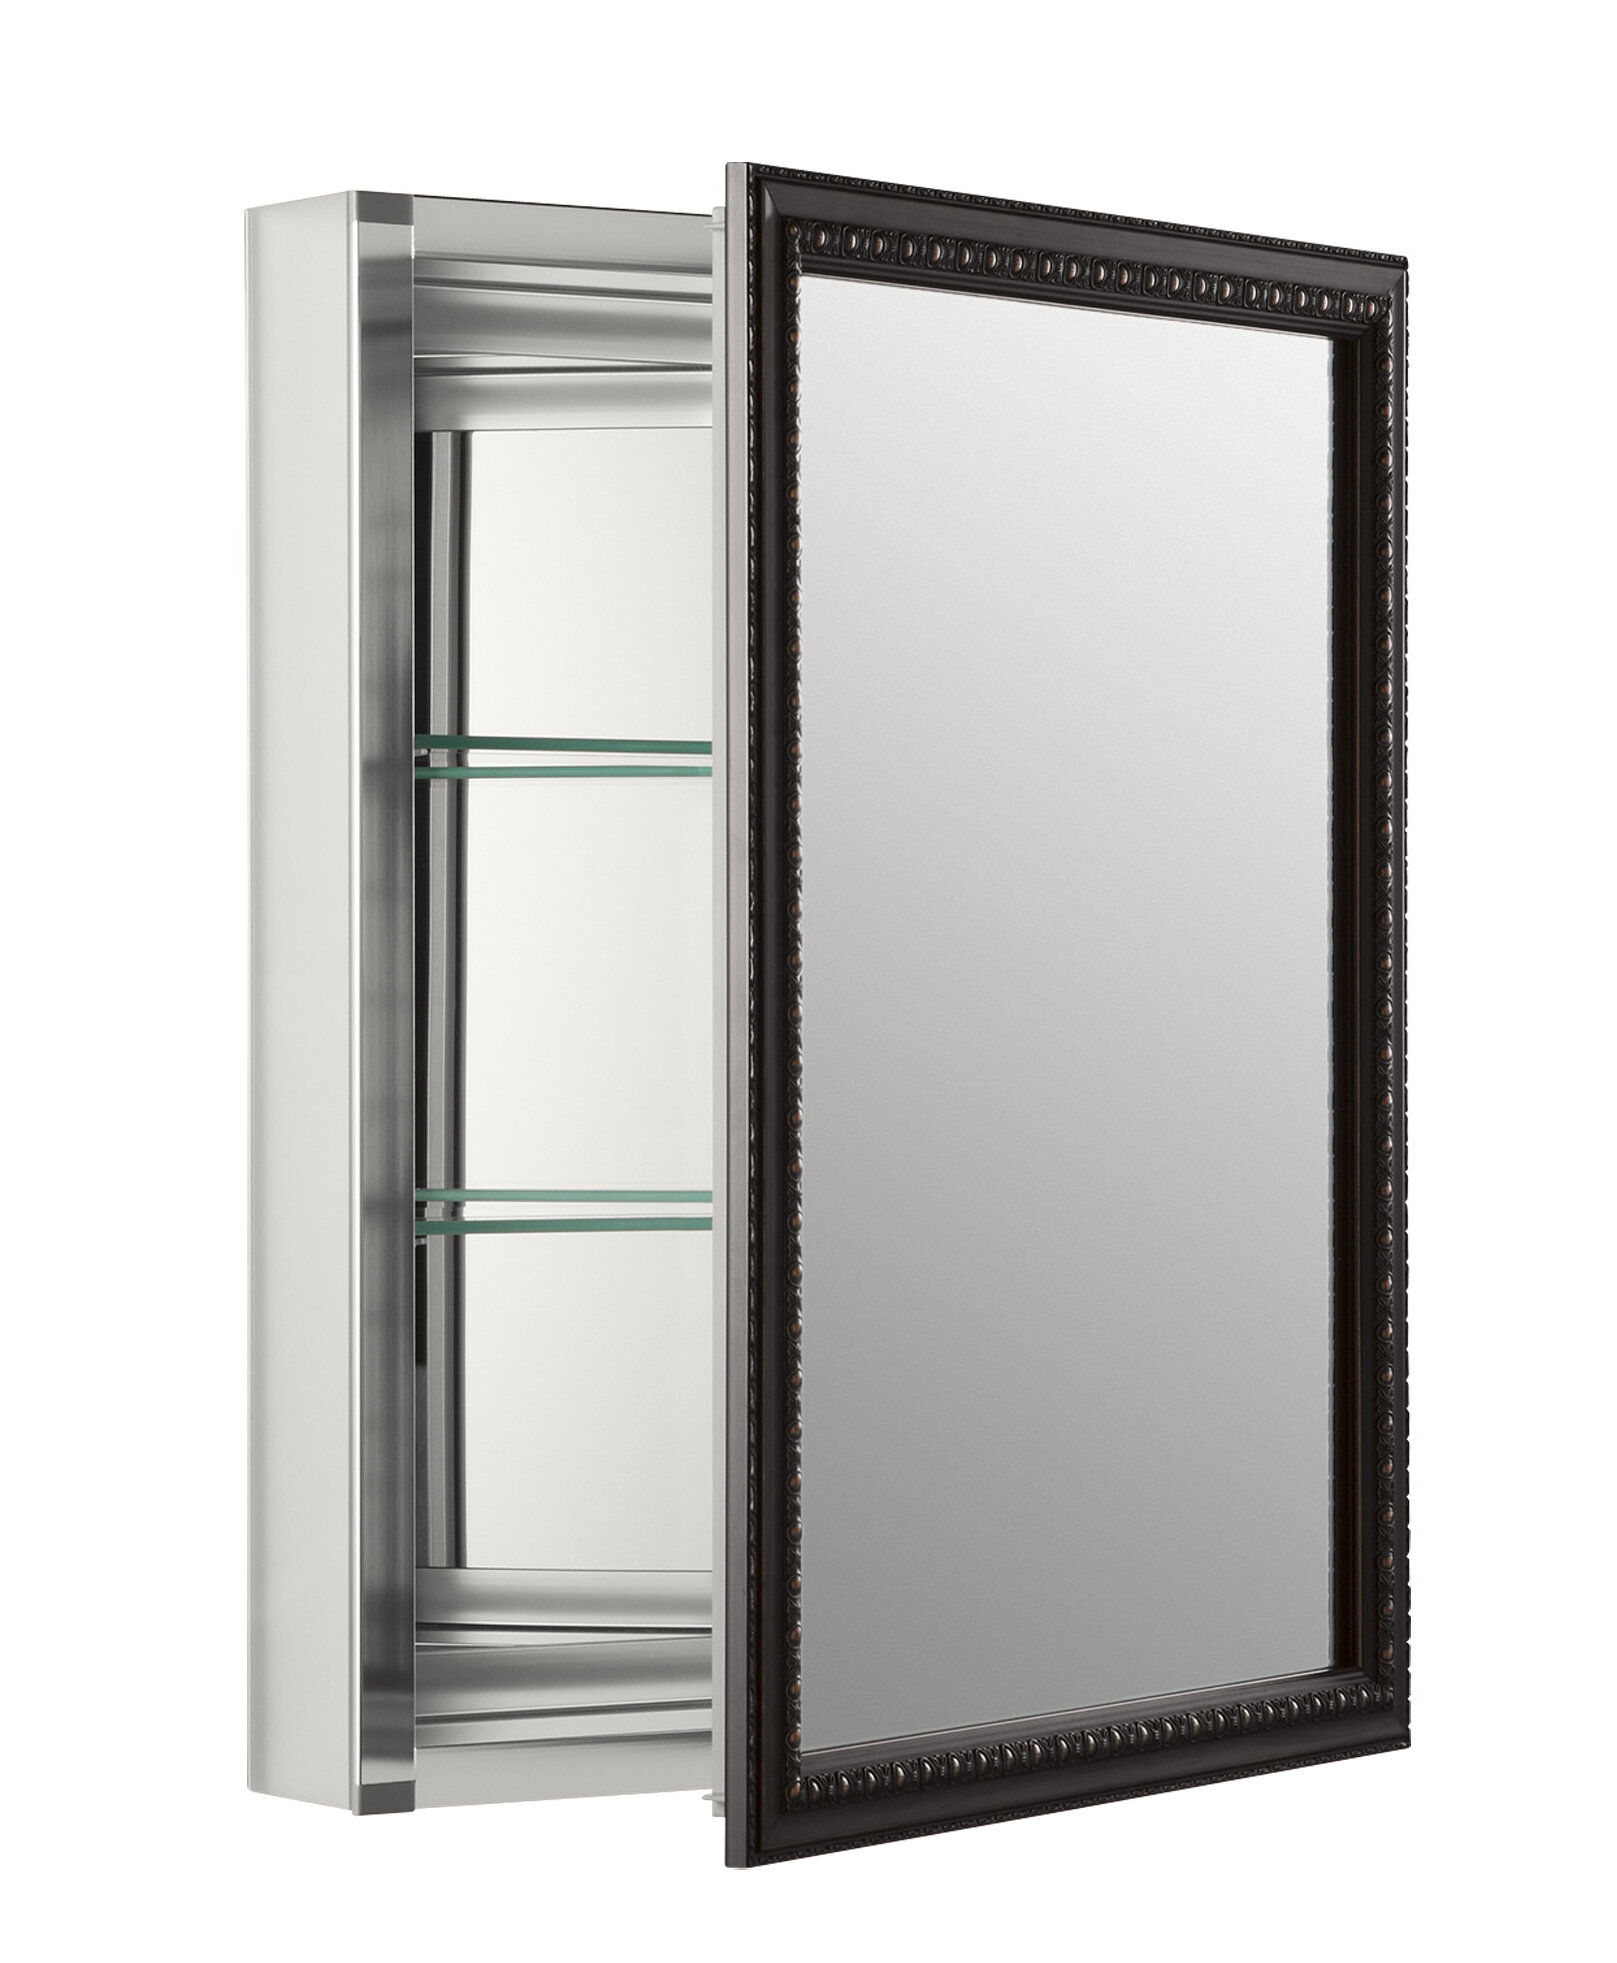 K 2967 Br1 Kohler 20 X 26 Wall Mount Mirrored Medicine Cabinet With Door Reviews Wayfair